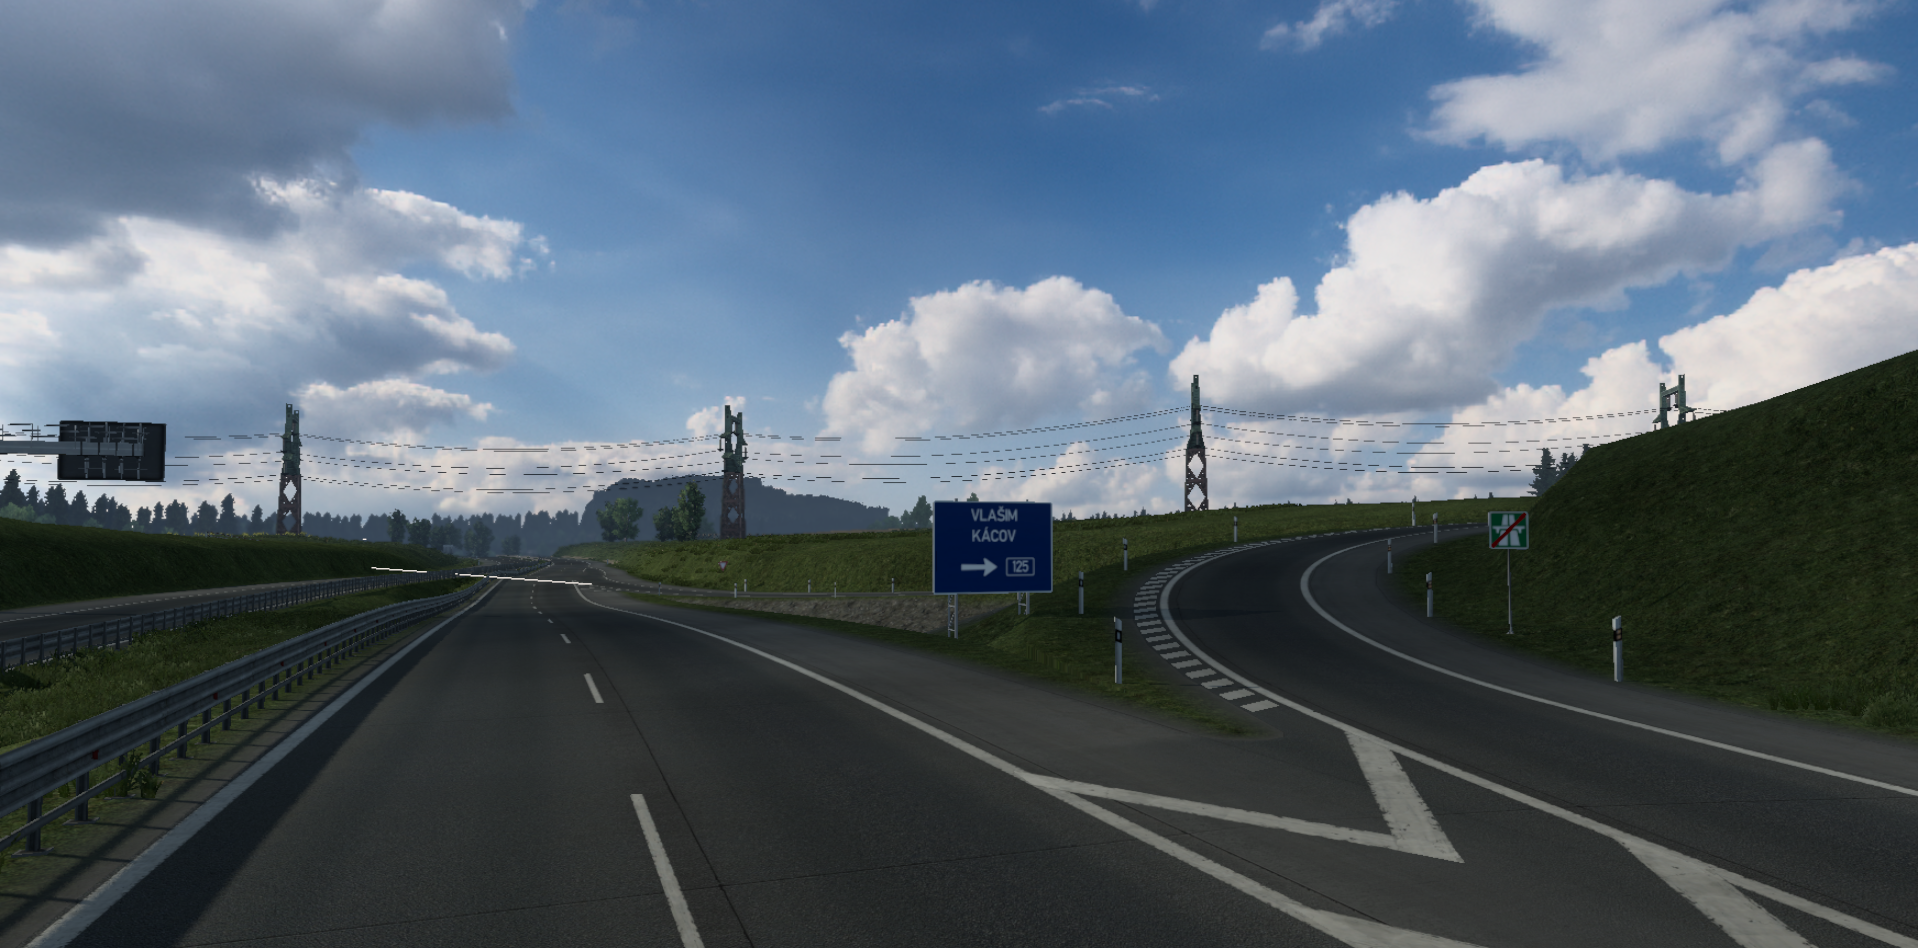 ets2_20210606_172350_00.png